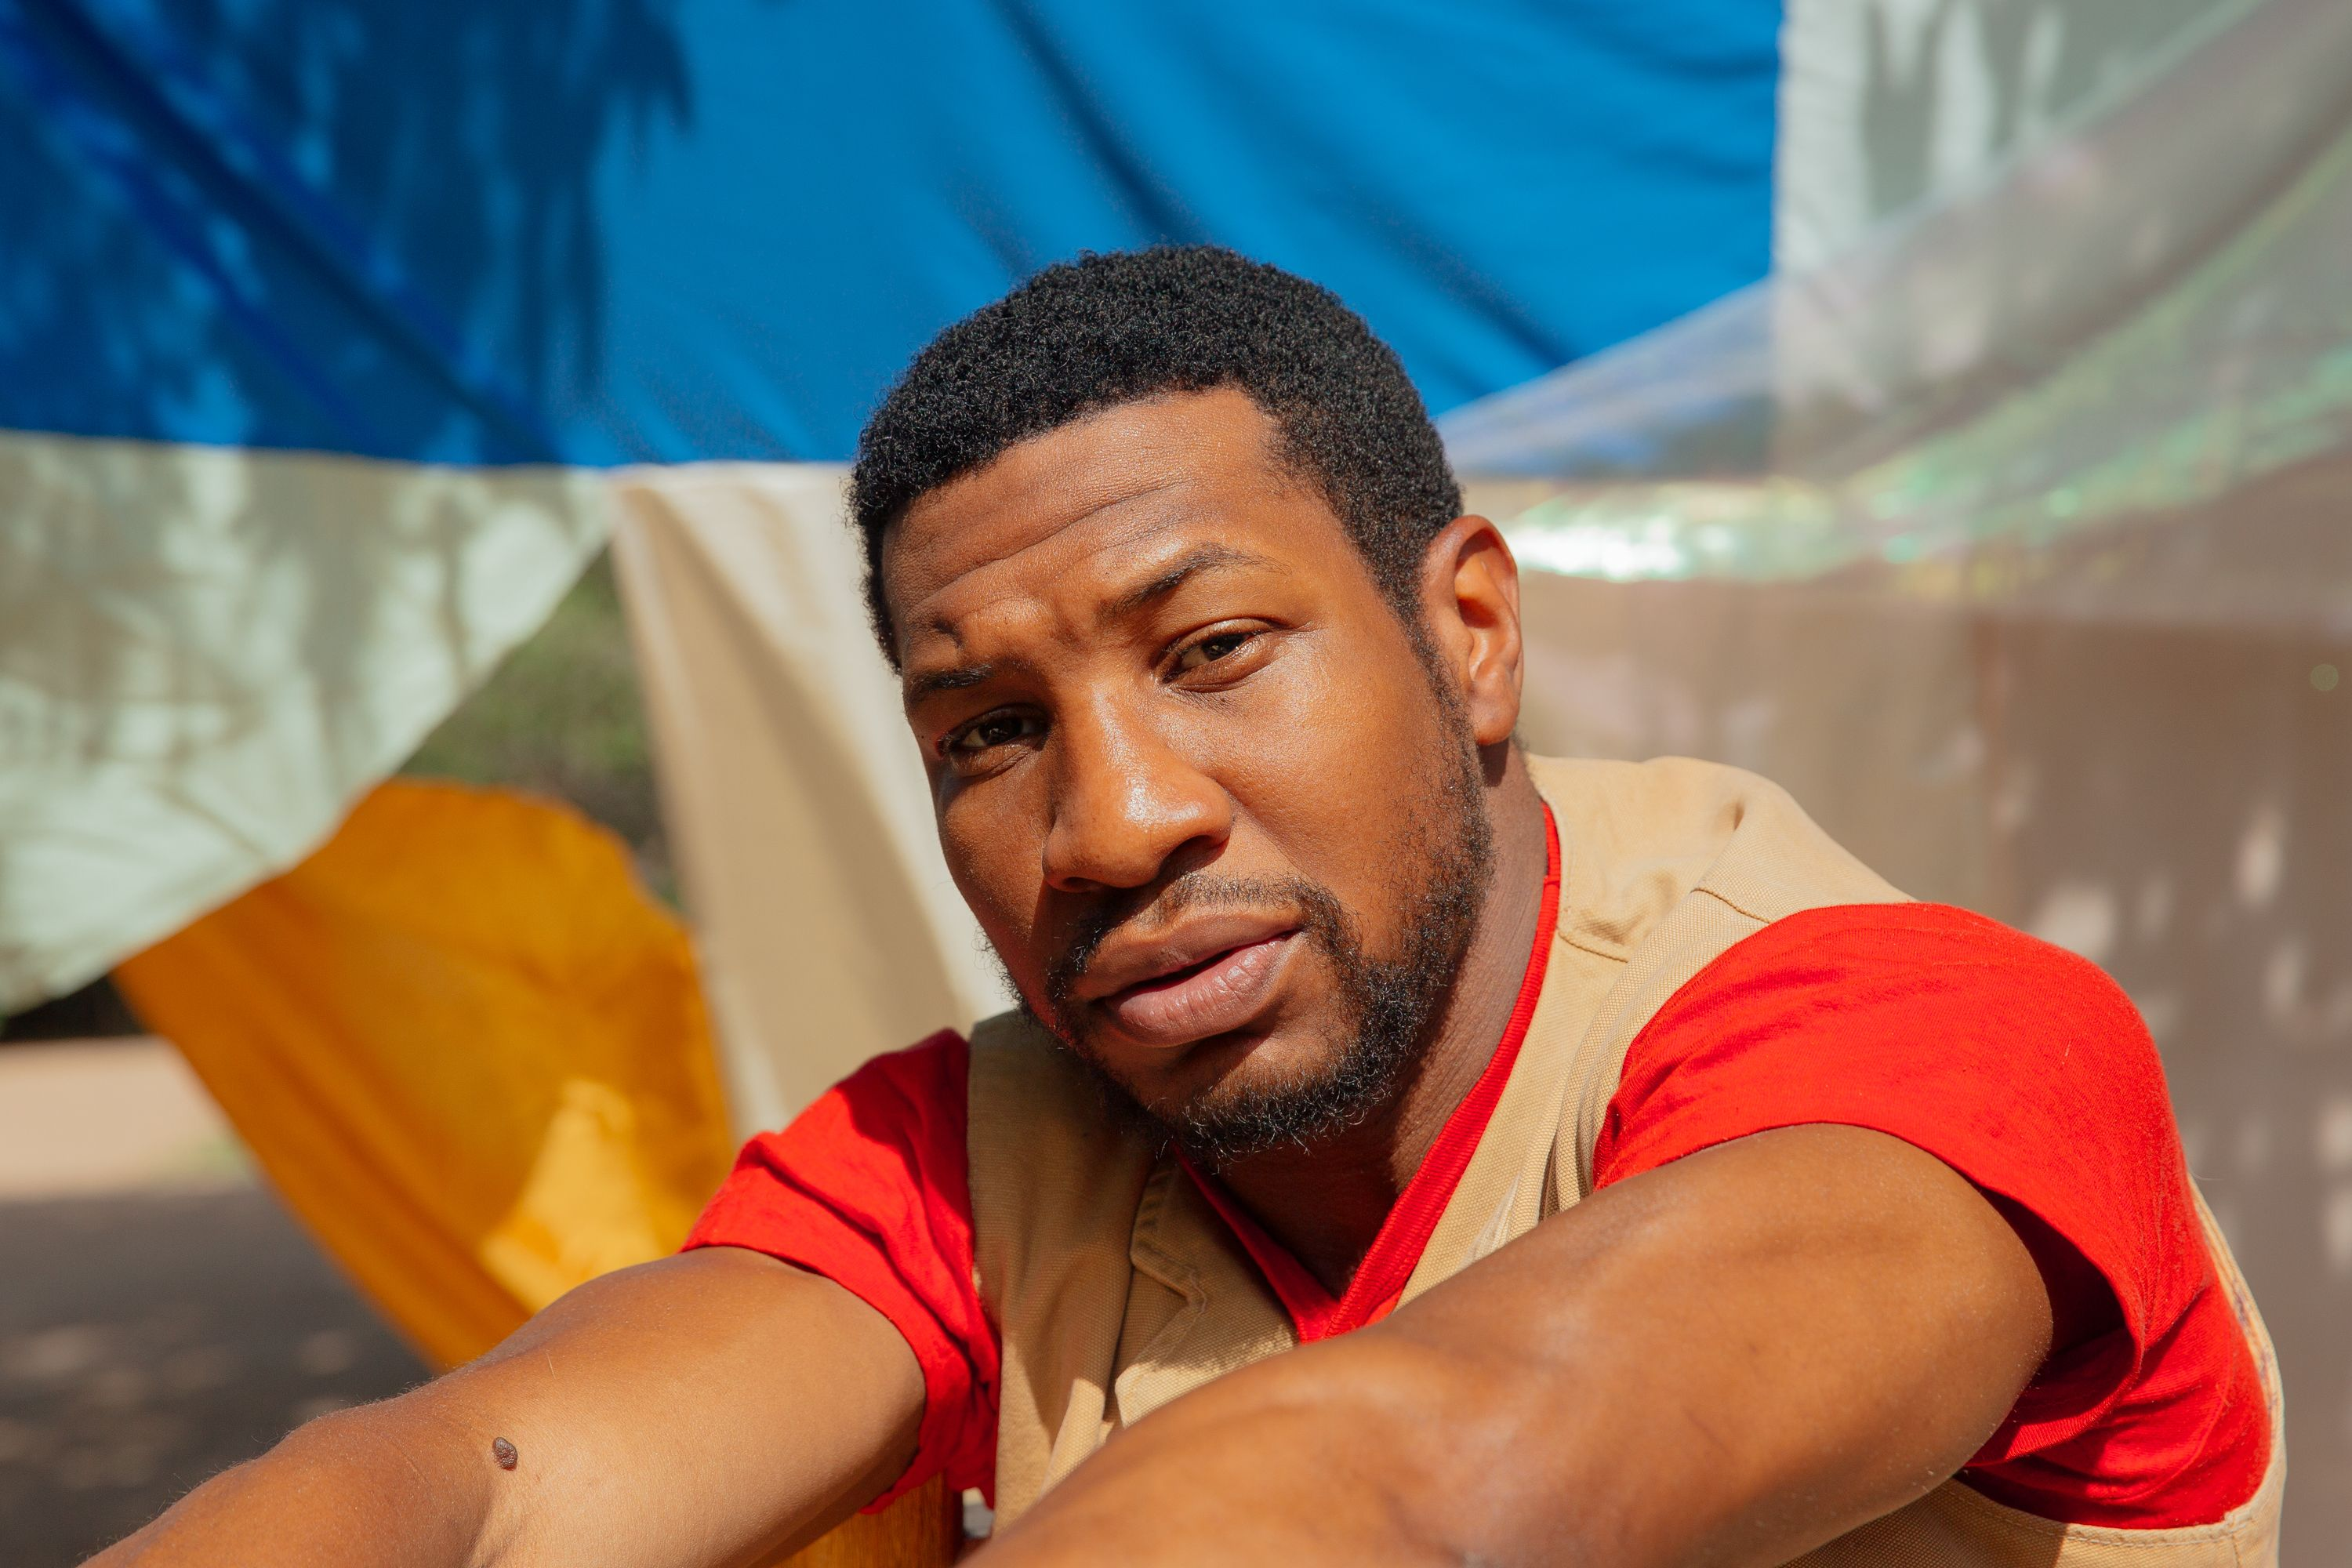 Jonathan Majors poses for a portrait at his home on October 02, 2020 | Photo: Getty Images